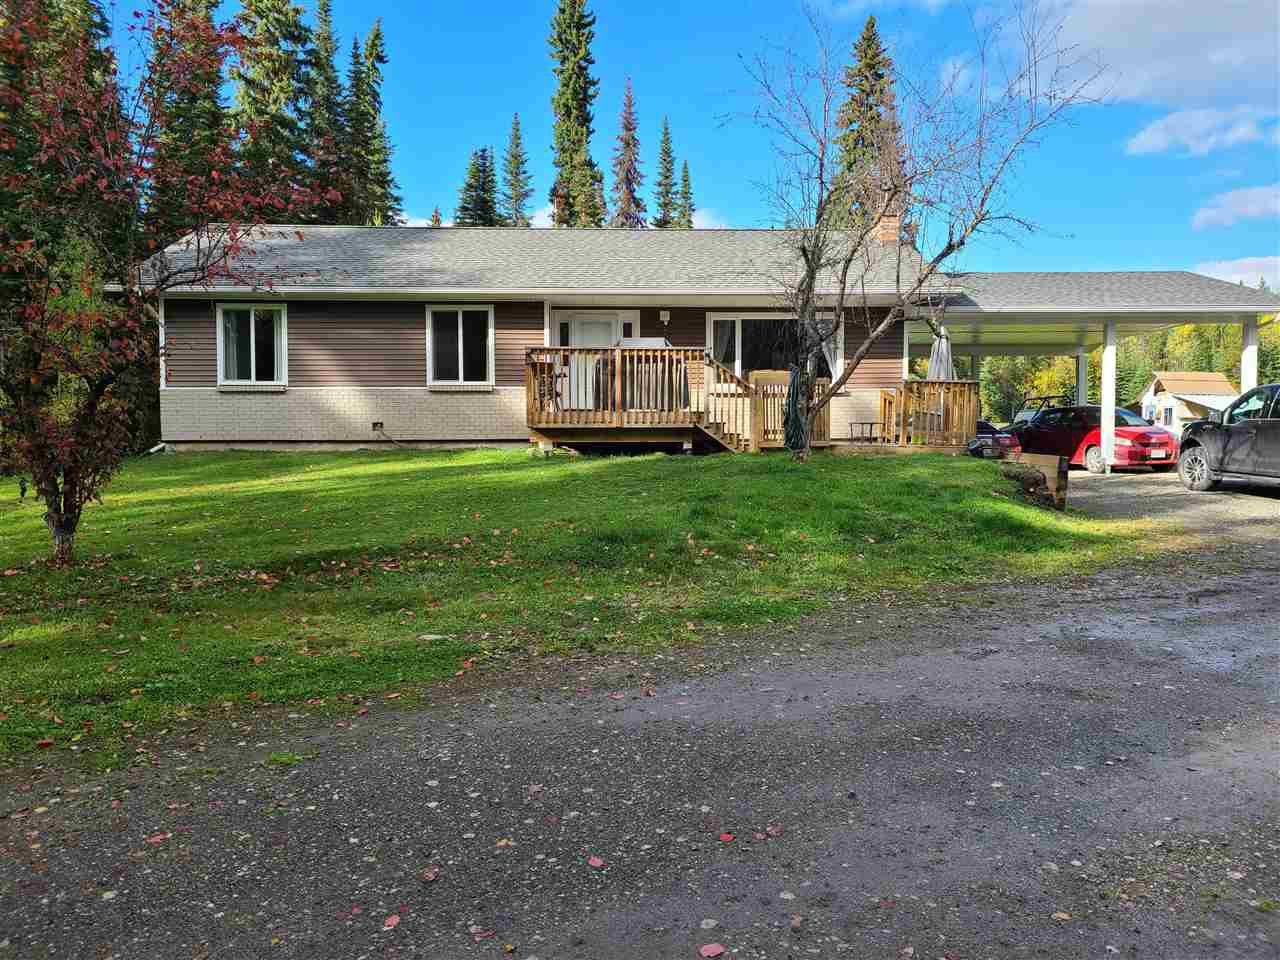 Main Photo: 4400 KNOEDLER Road in Prince George: Hobby Ranches House for sale (PG Rural North (Zone 76))  : MLS®# R2502367